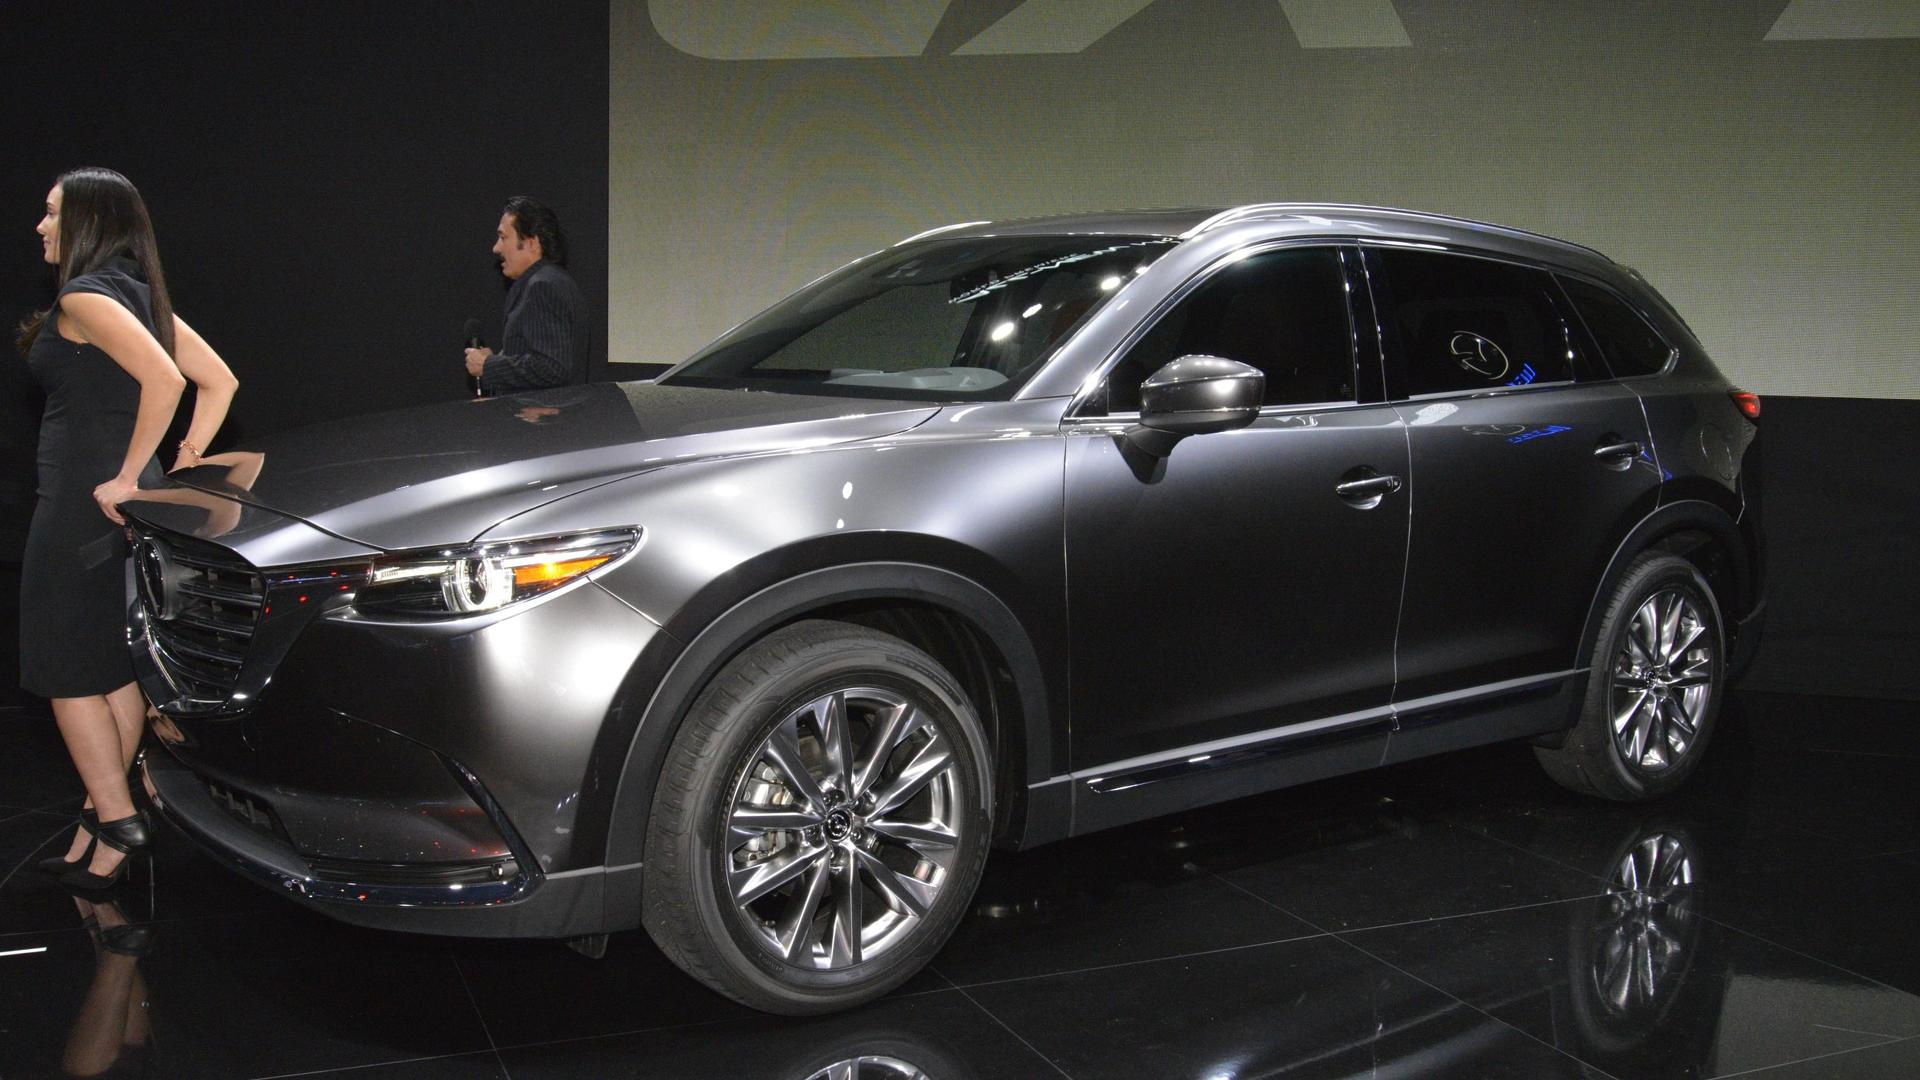 Mazda Cx5 2017 Colors >> 2017 Mazda CX-9 unveiled with a new turbocharged engine